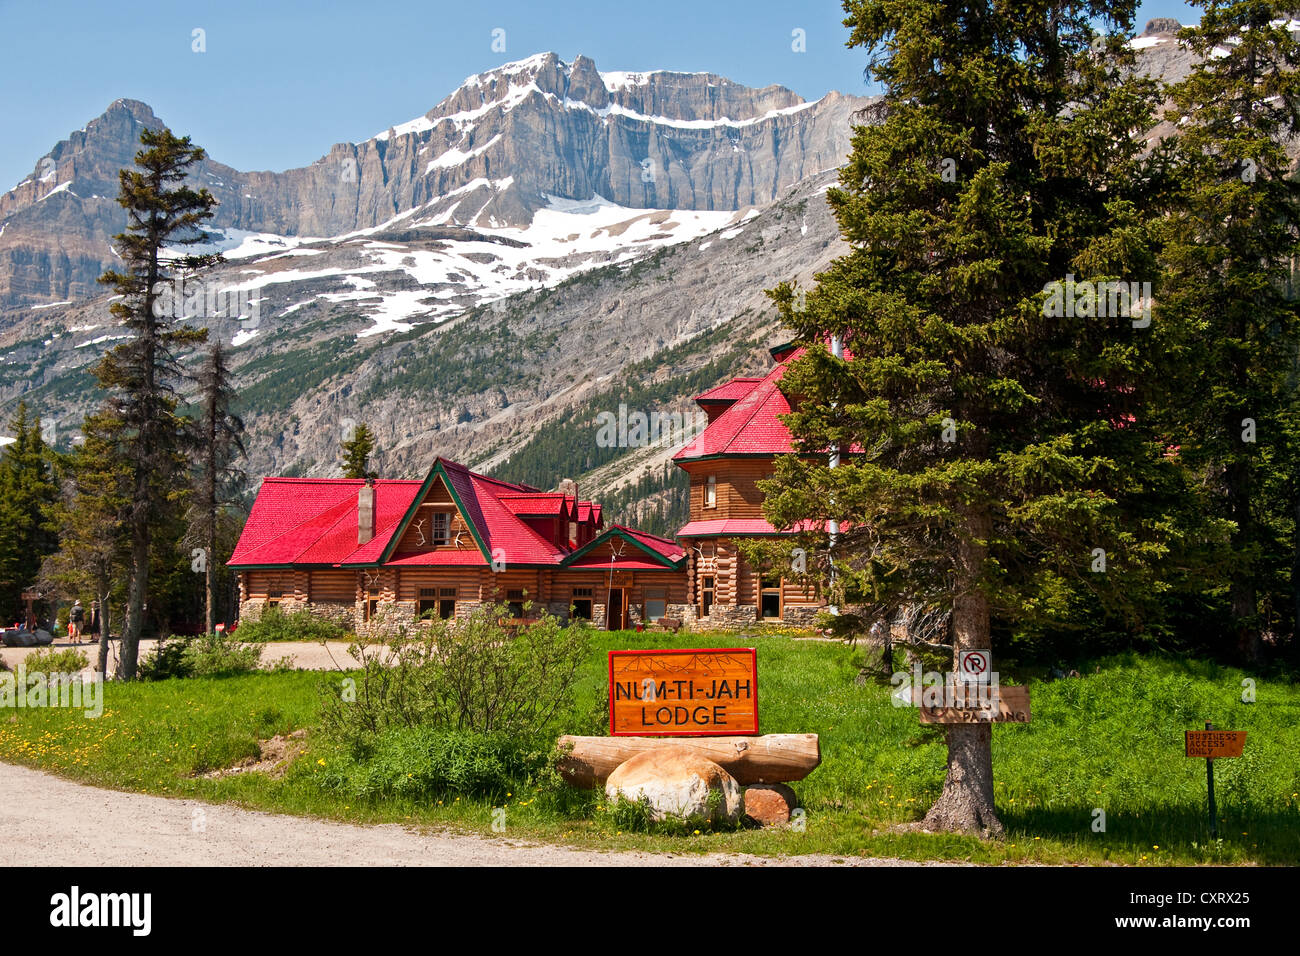 Num-Ti-Jah Lodge on Bow Lake in Banff National Park. - Stock Image